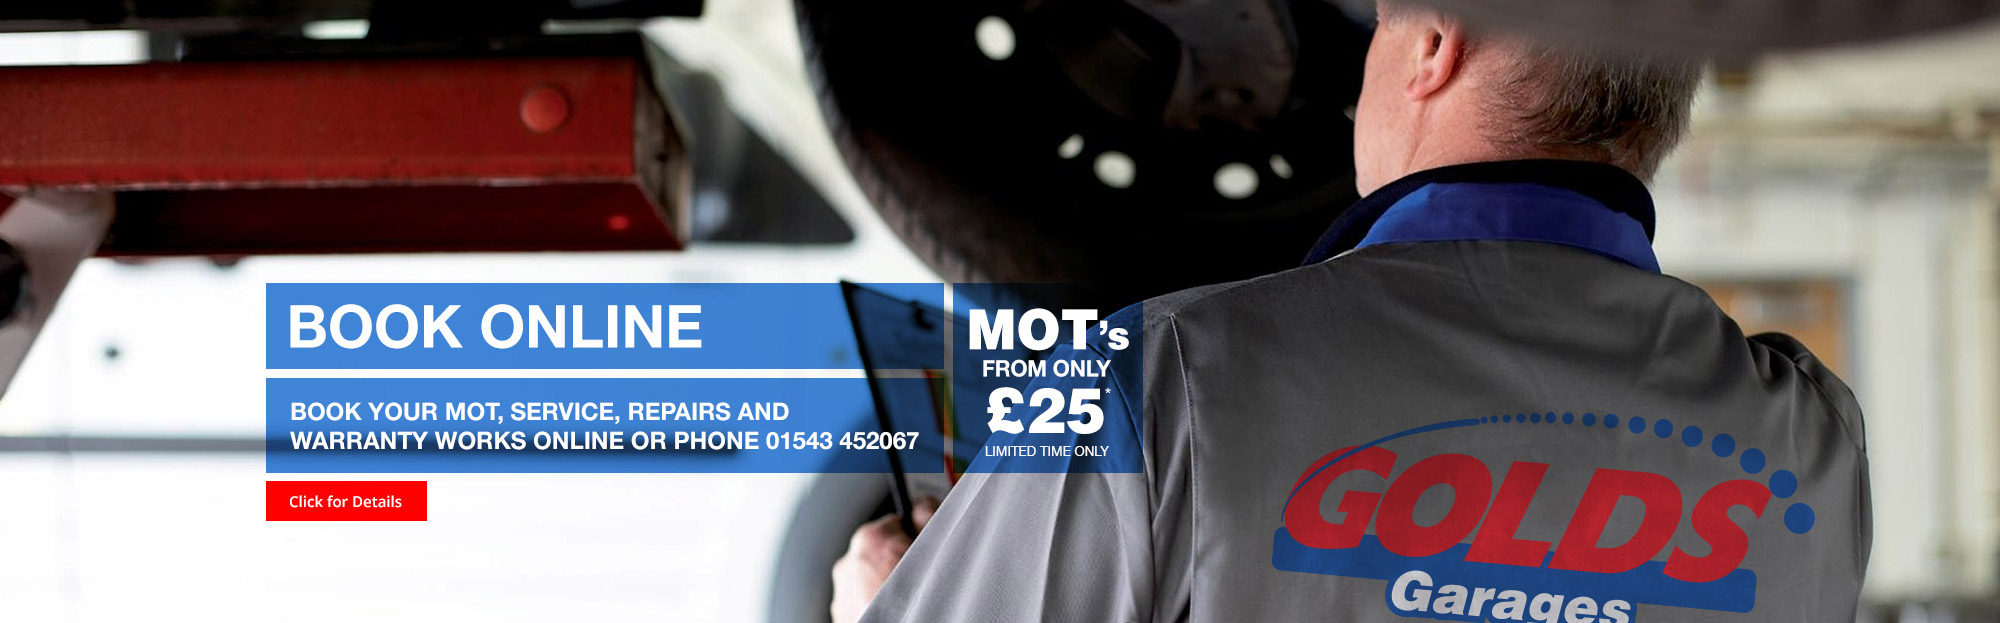 Mot Tyres Servicing And Repair Golds Garages Brownhills